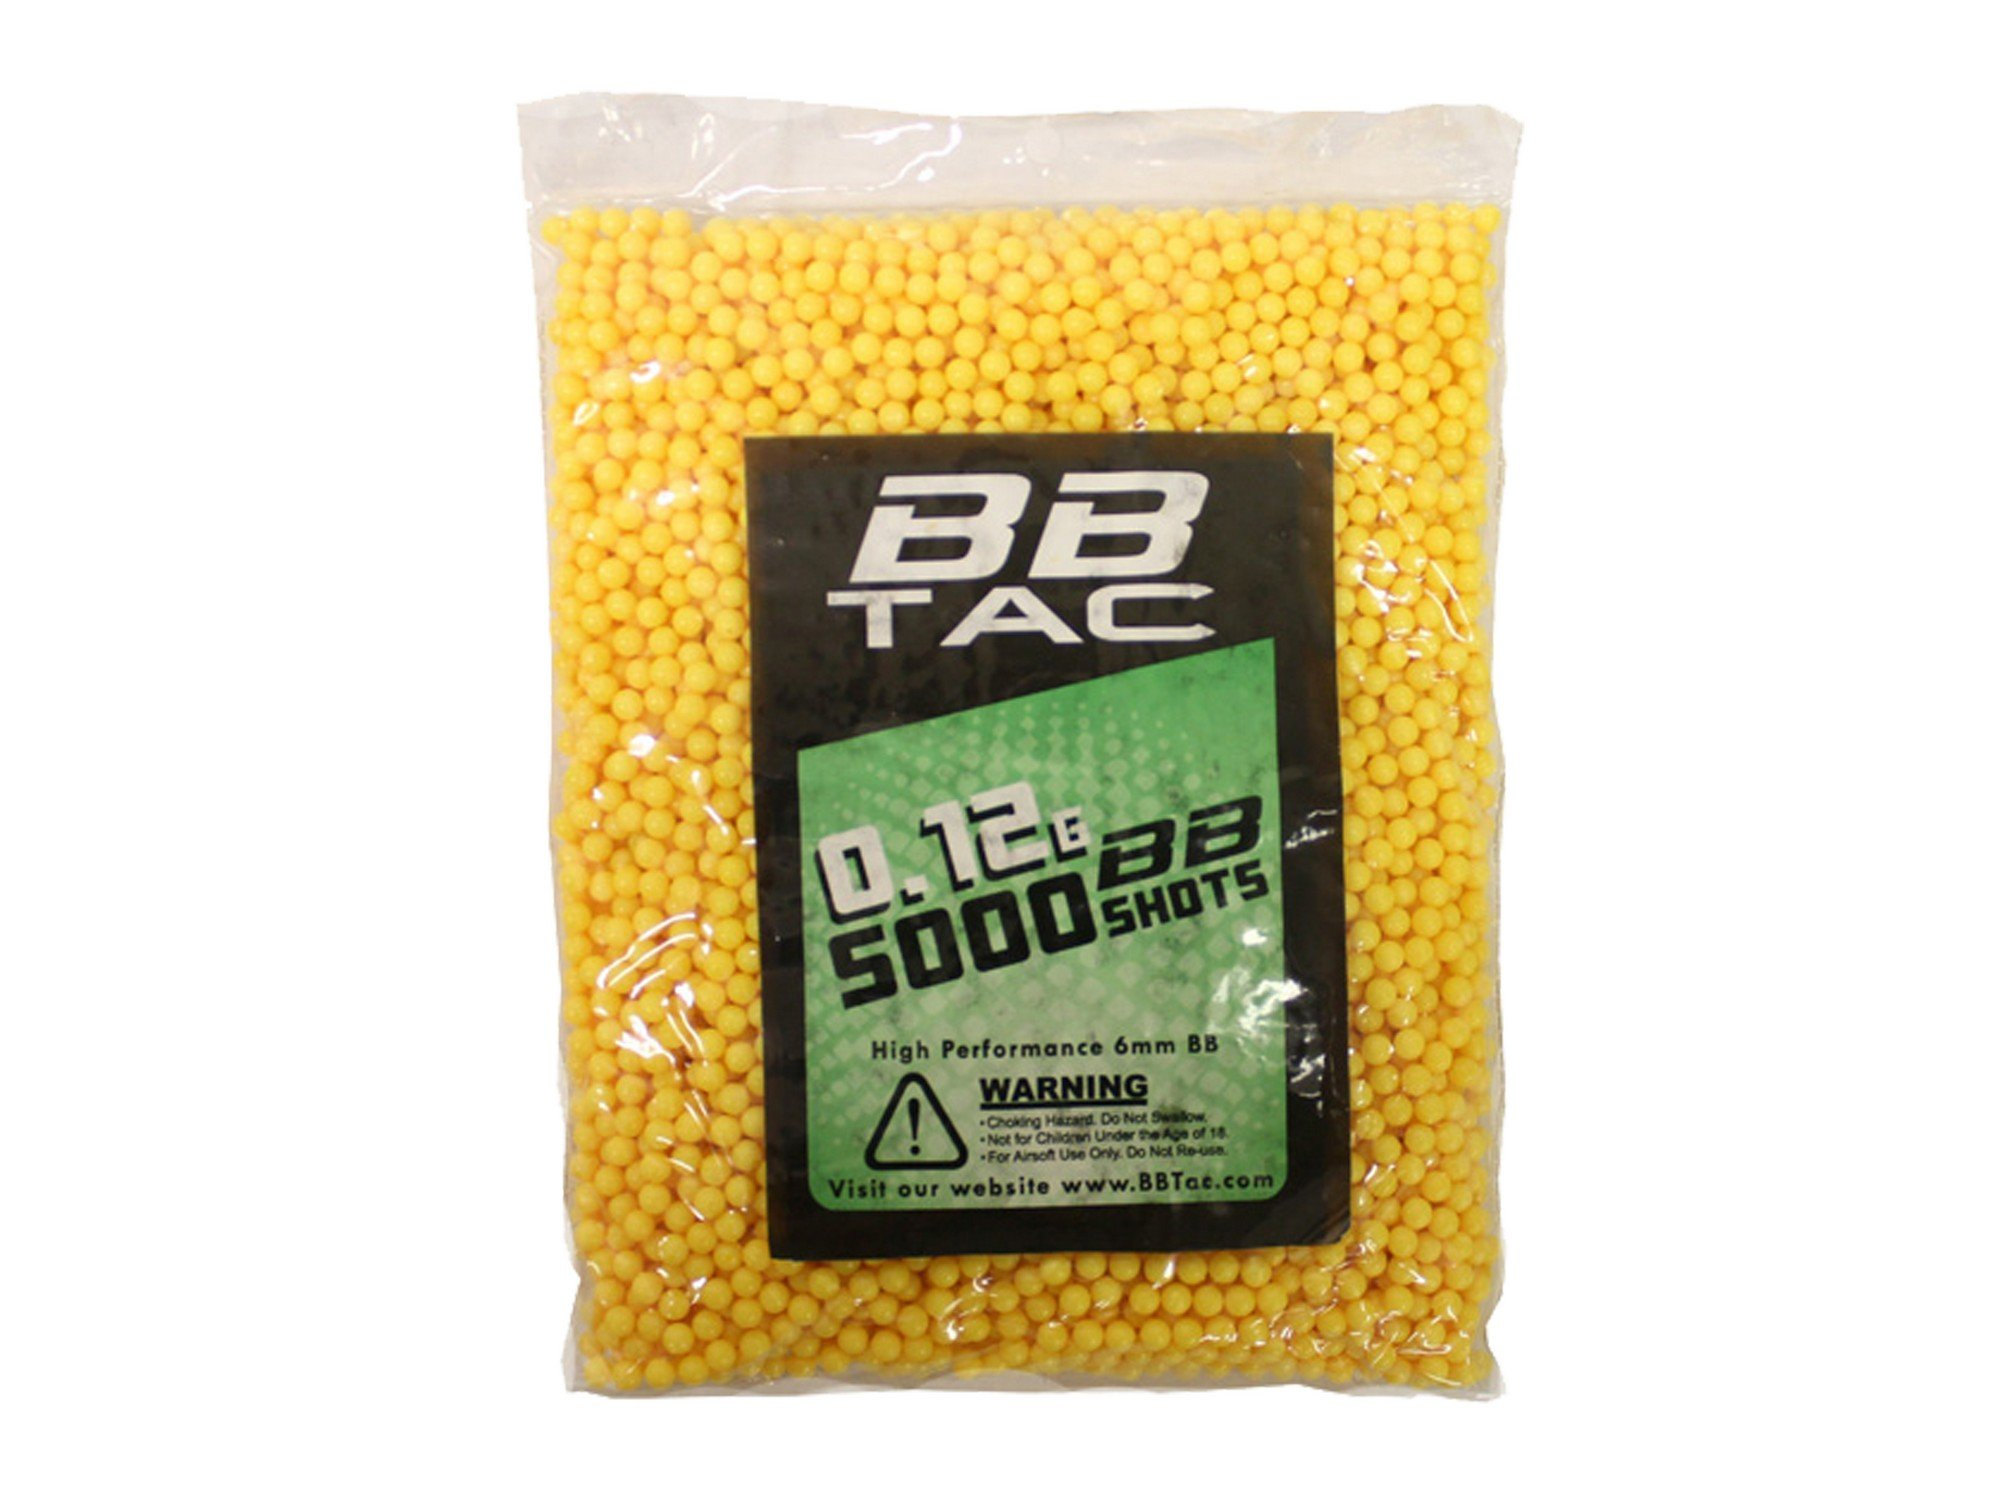 BBTac Airsoft BBs .12g Ammo 6mm (100,000 Round Bag, Multi Colors) by BBTac (Image #5)